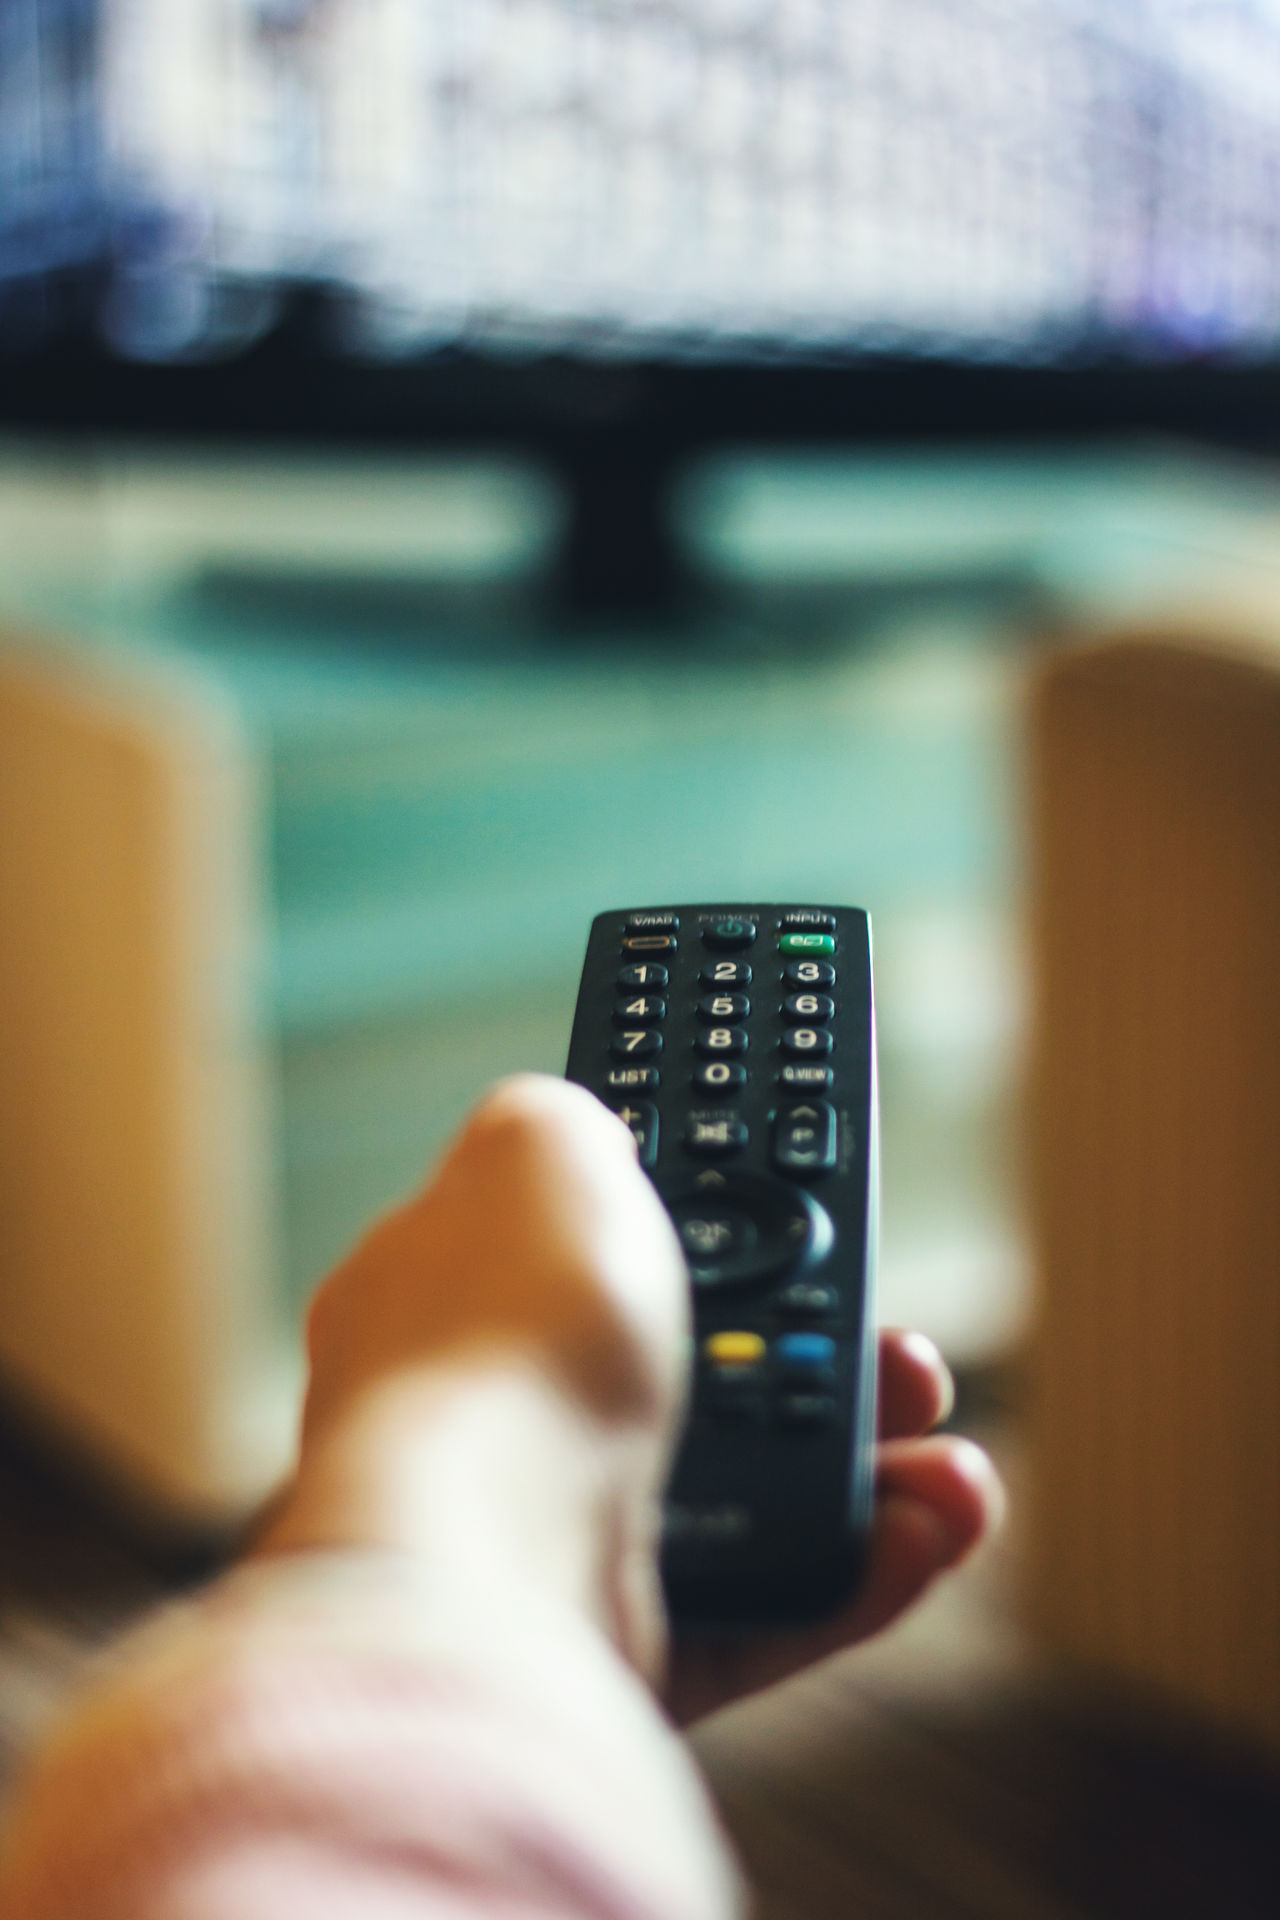 Remote control Choice Close-up Control Day Device Screen Digital Display Hilton Hotel Holding Human Body Part Human Hand Indoors  Leisure Activity Liquid-crystal Display One Person People Push Button Real People Remote Control Technology Television Set Television Show Watching Tv